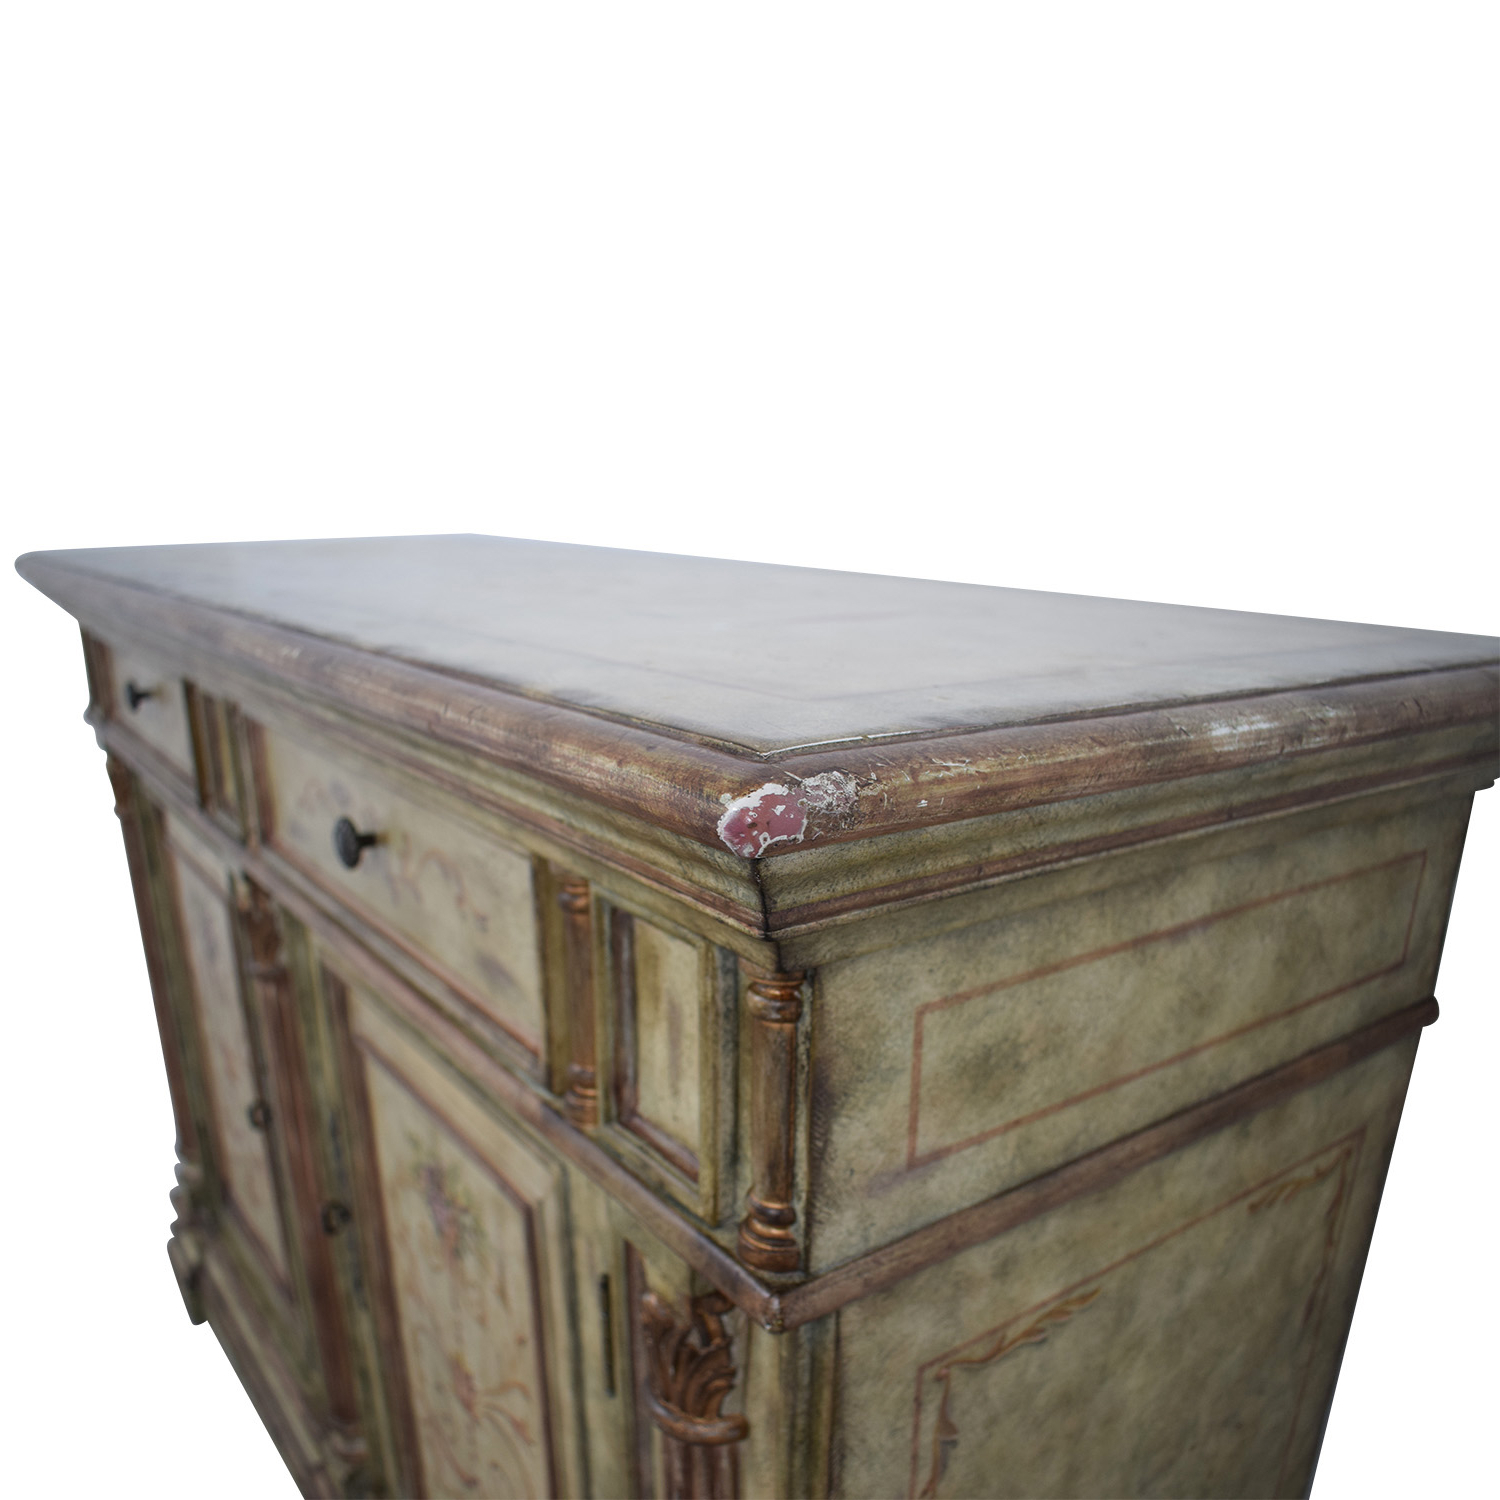 78% Off – Hooker Furniture Hooker Furniture Seven Seas Creme Scroll Painted Sideboard / Storage Intended For Seven Seas Asian Sideboards (View 10 of 20)